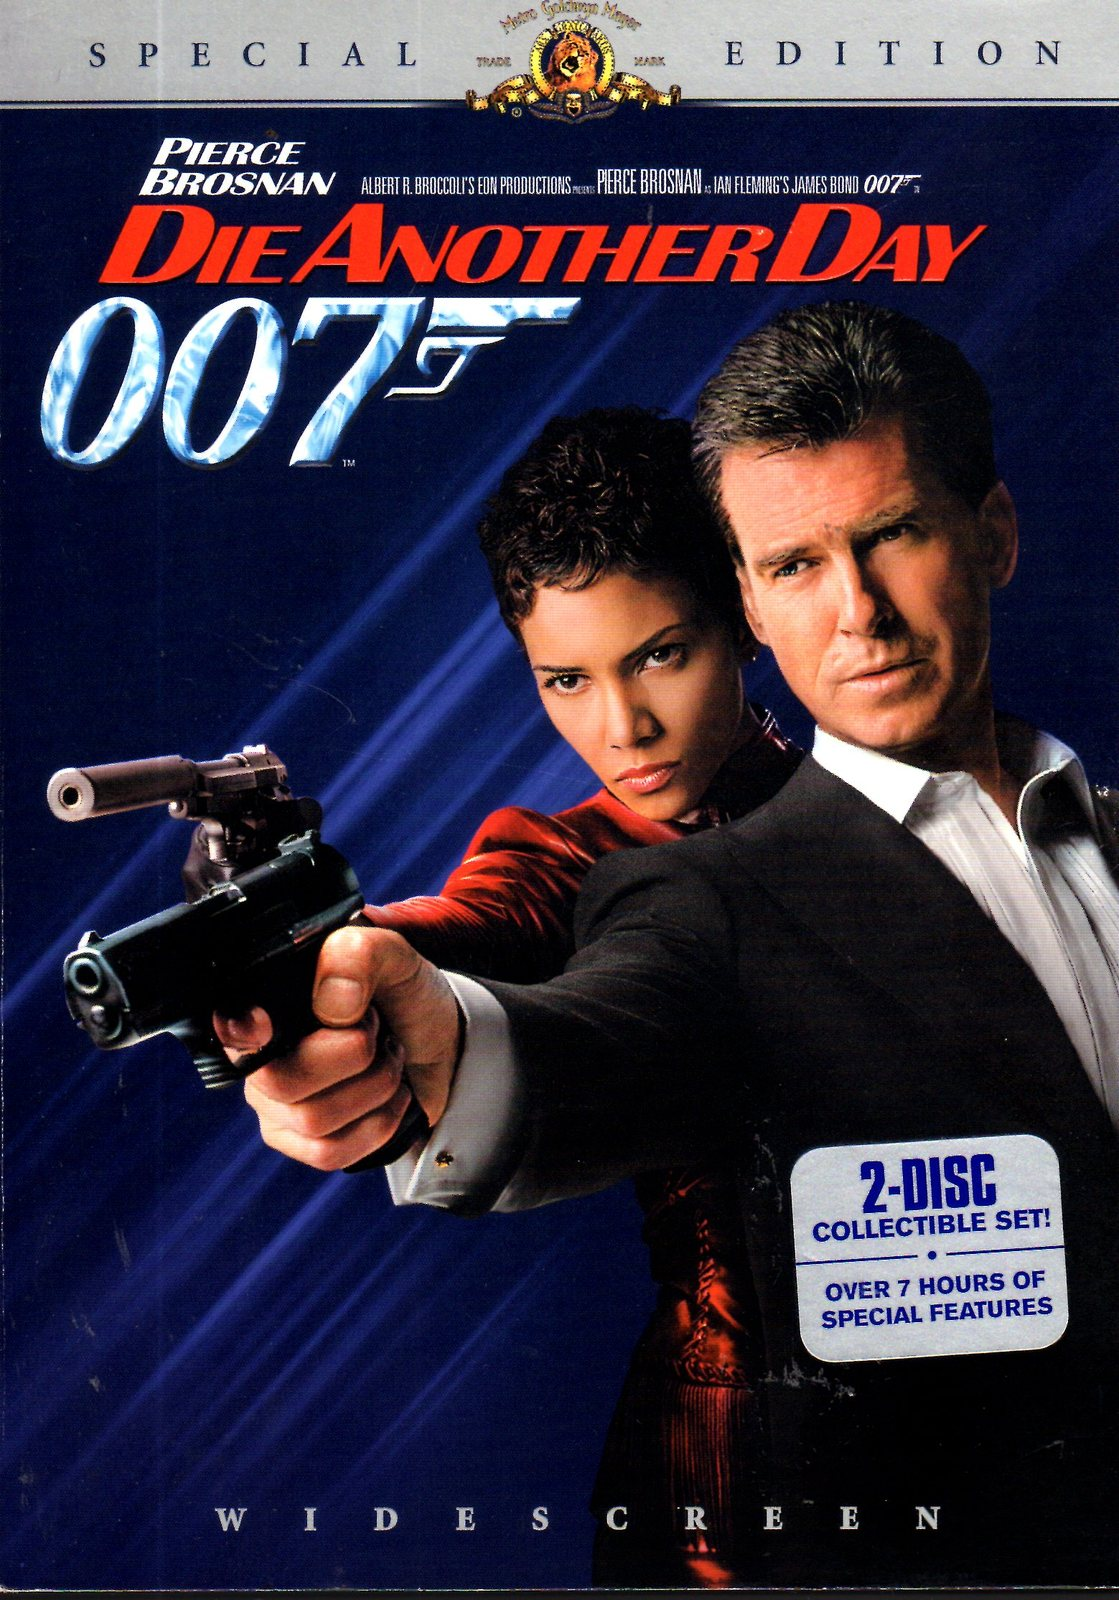 DVD - Die Another Day - James Bond - 007 - Pierce Brosnan, H. Berry - 2 disc set